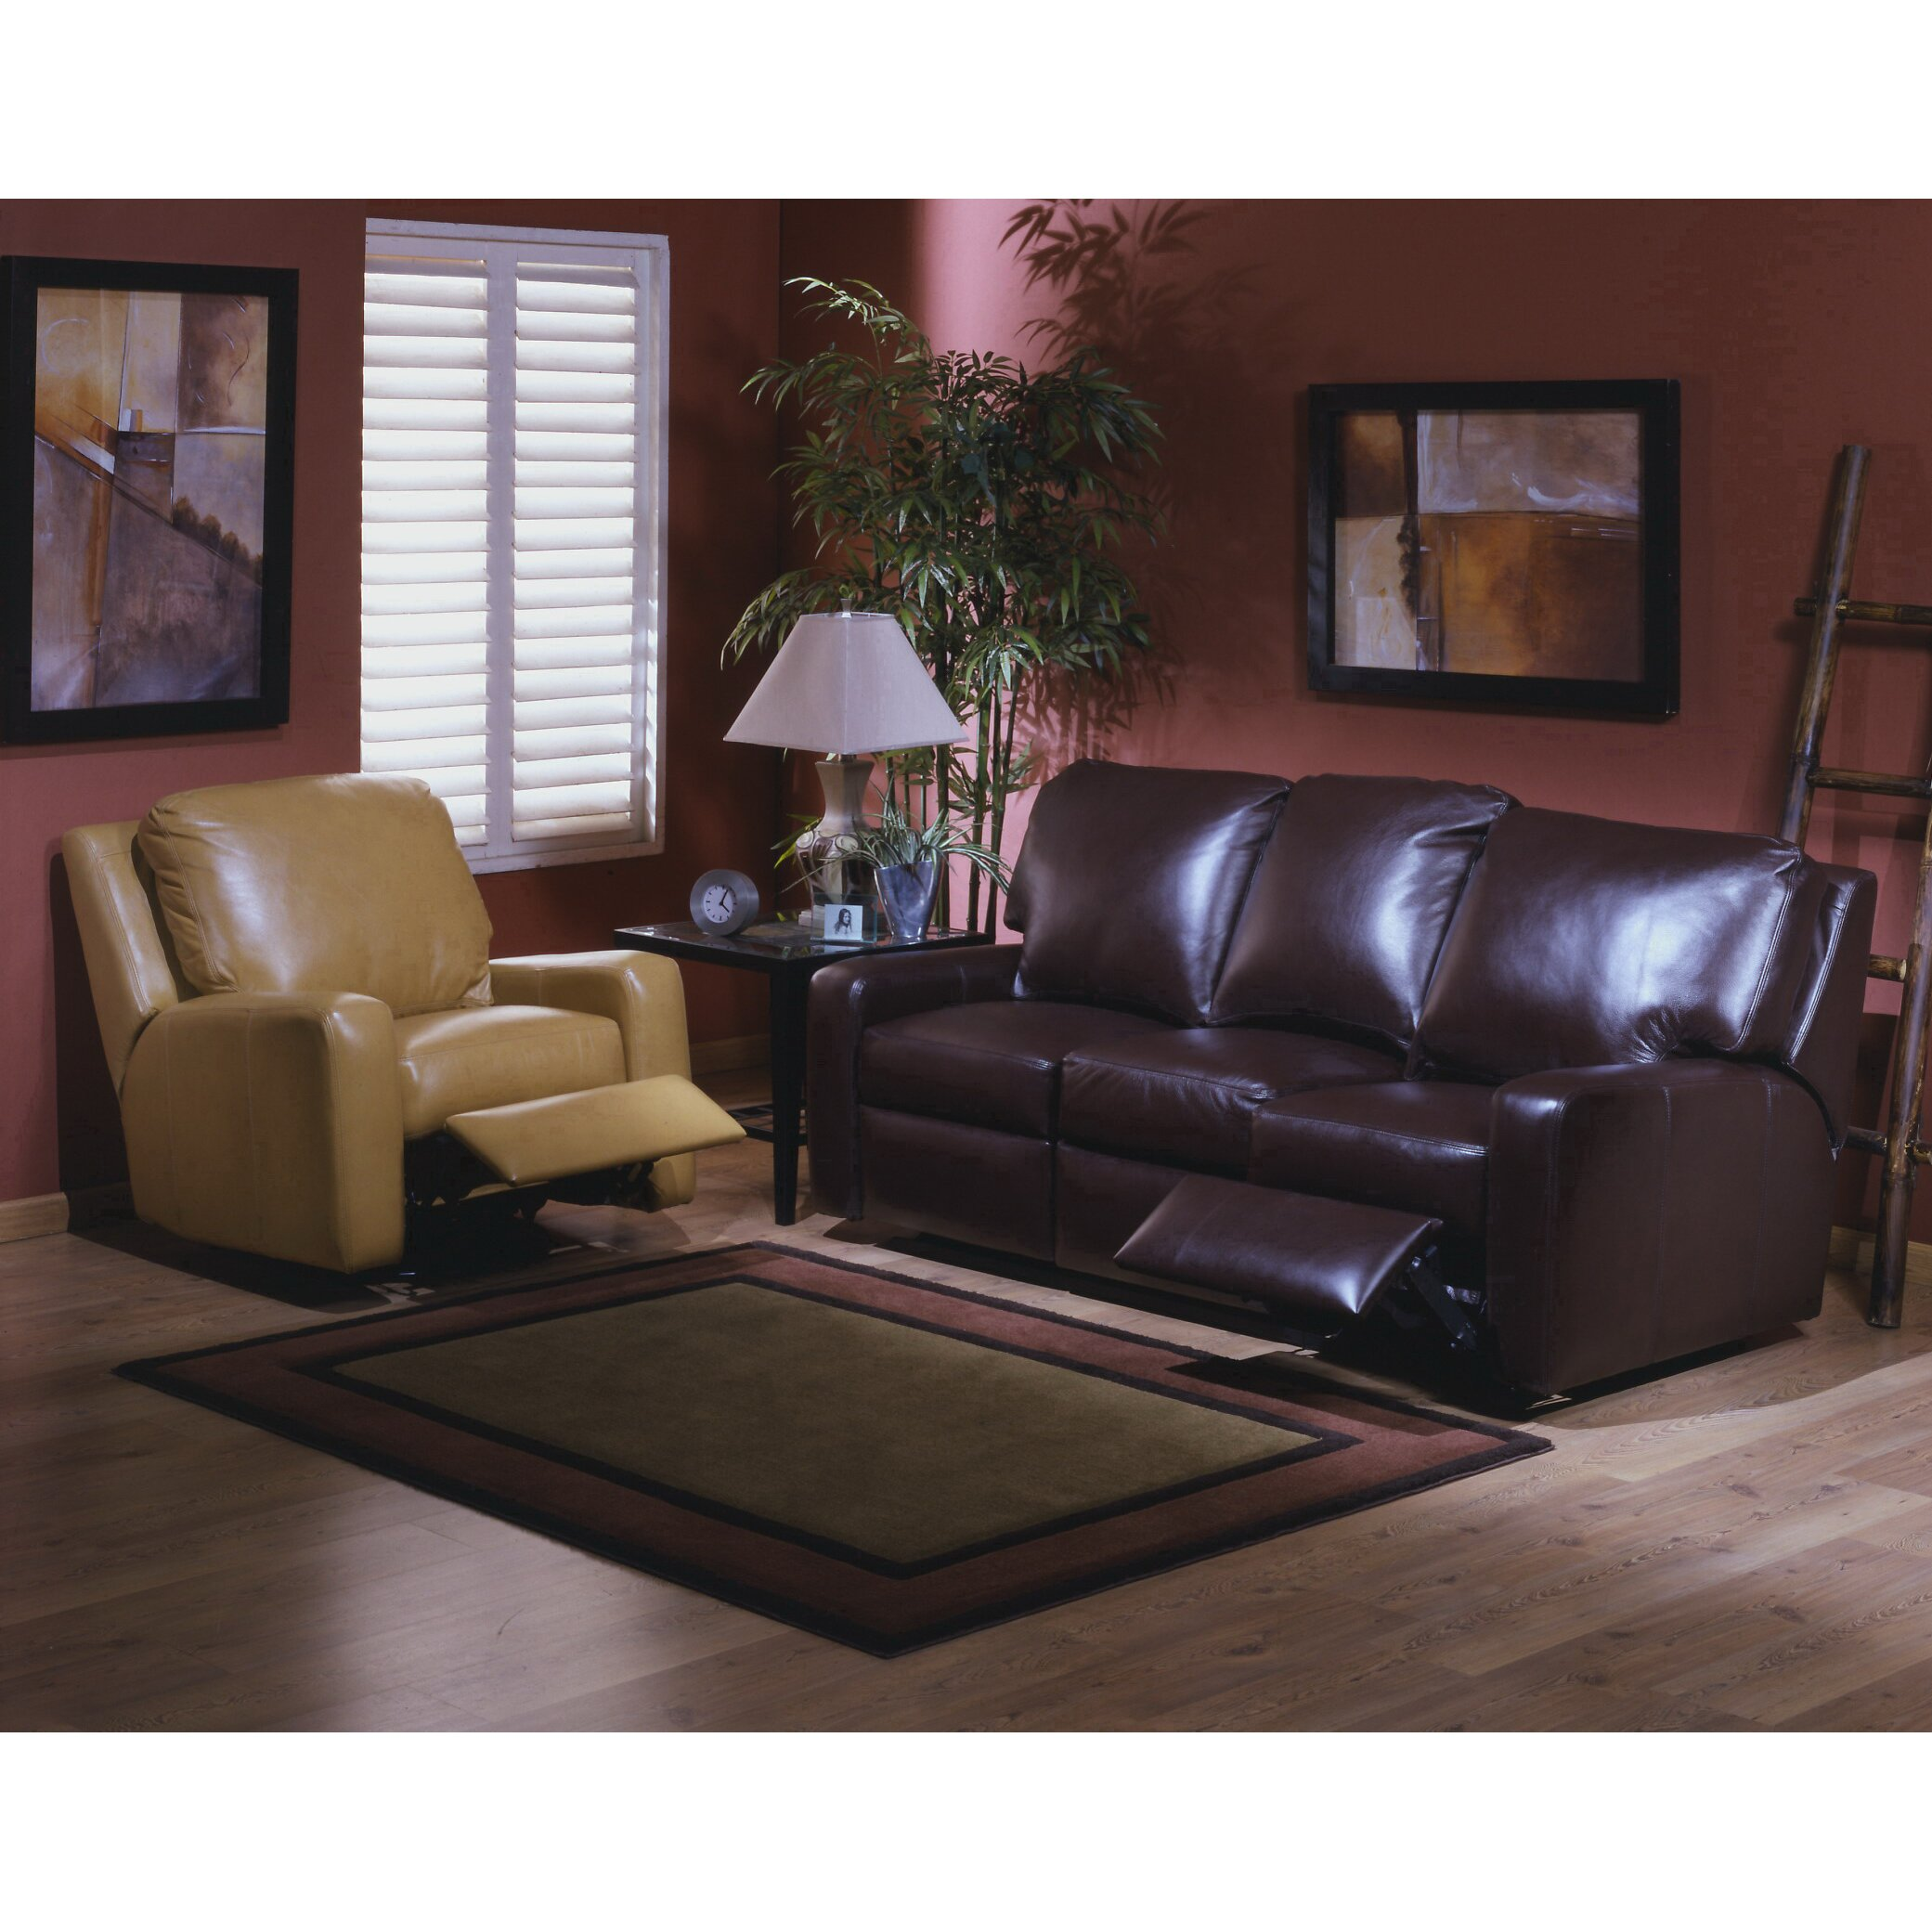 Omnia Leather Mirage Reclining Leather Living Room Set Reviews Wayfair